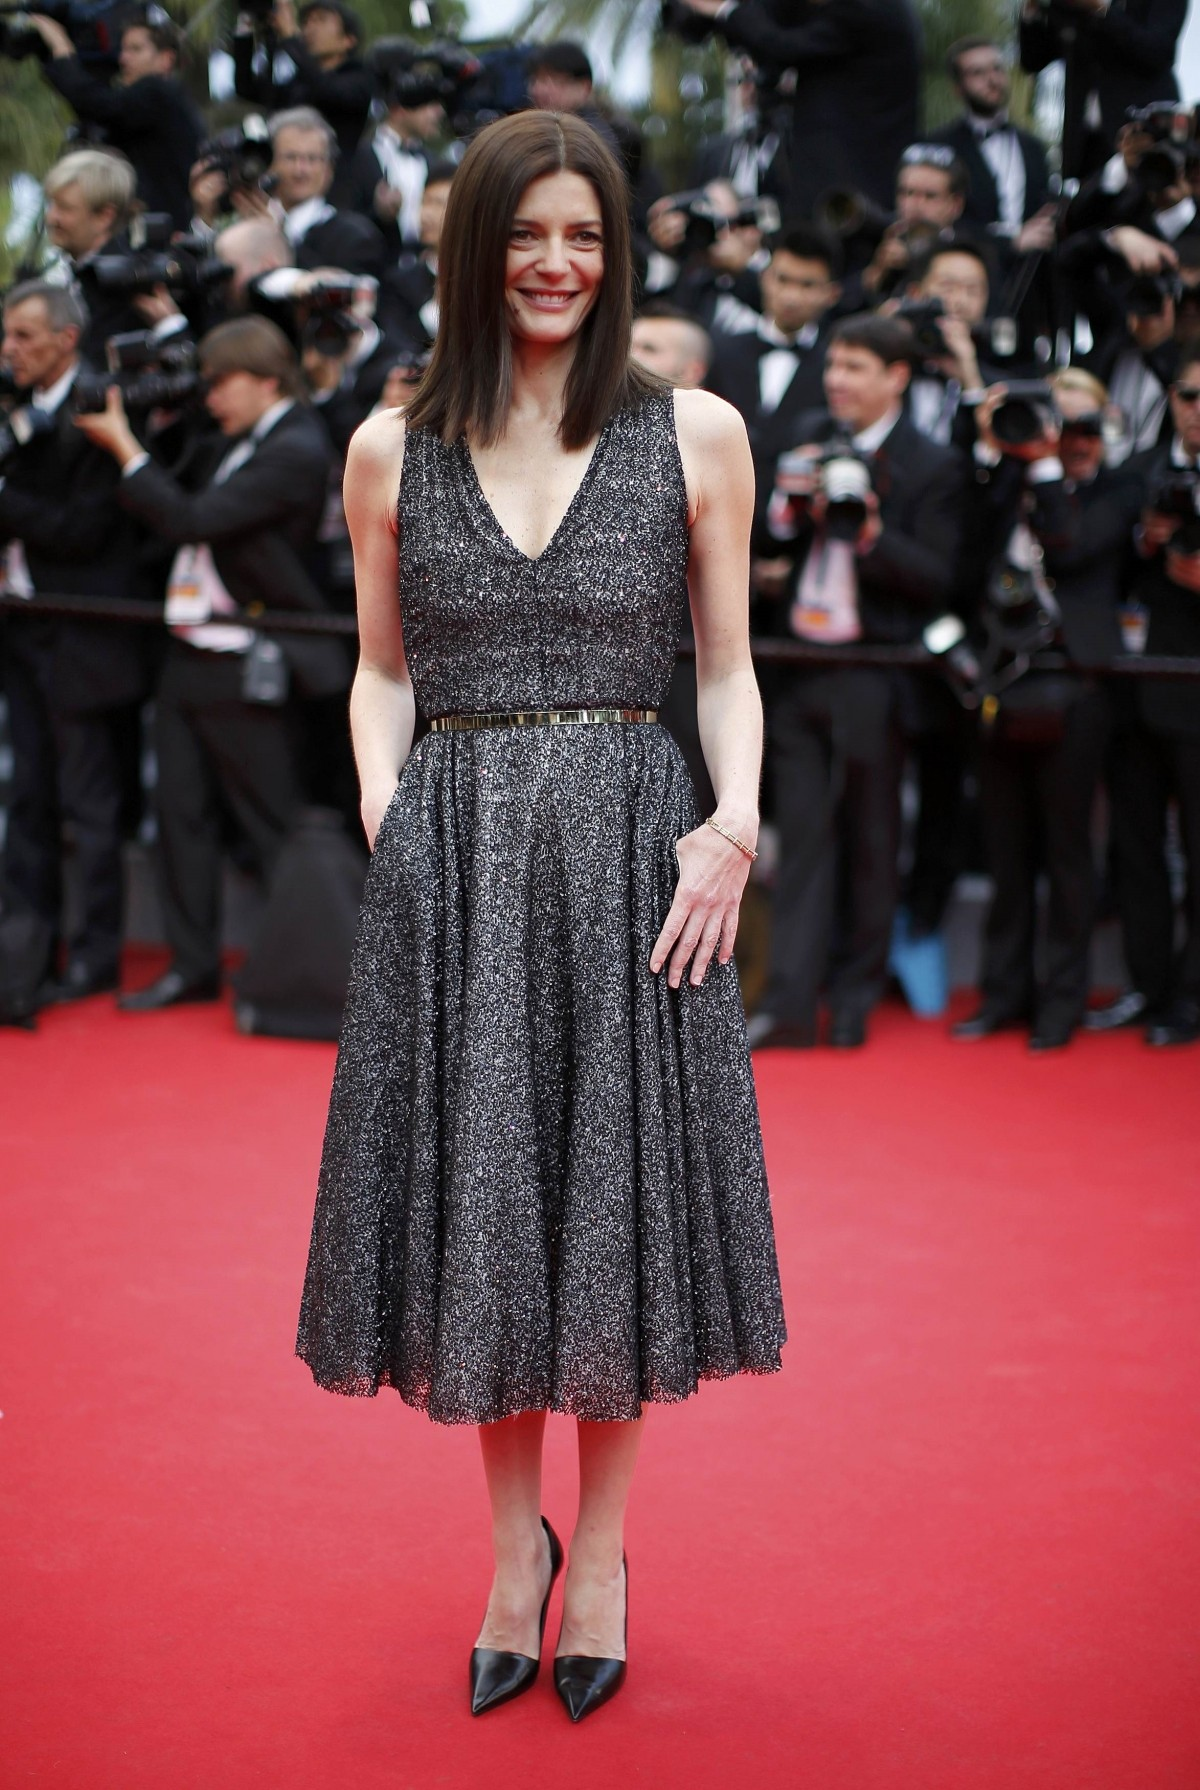 Actress Chiara Mastroianni poses on the red carpet as she arrives for the opening ceremony and the screening of the film